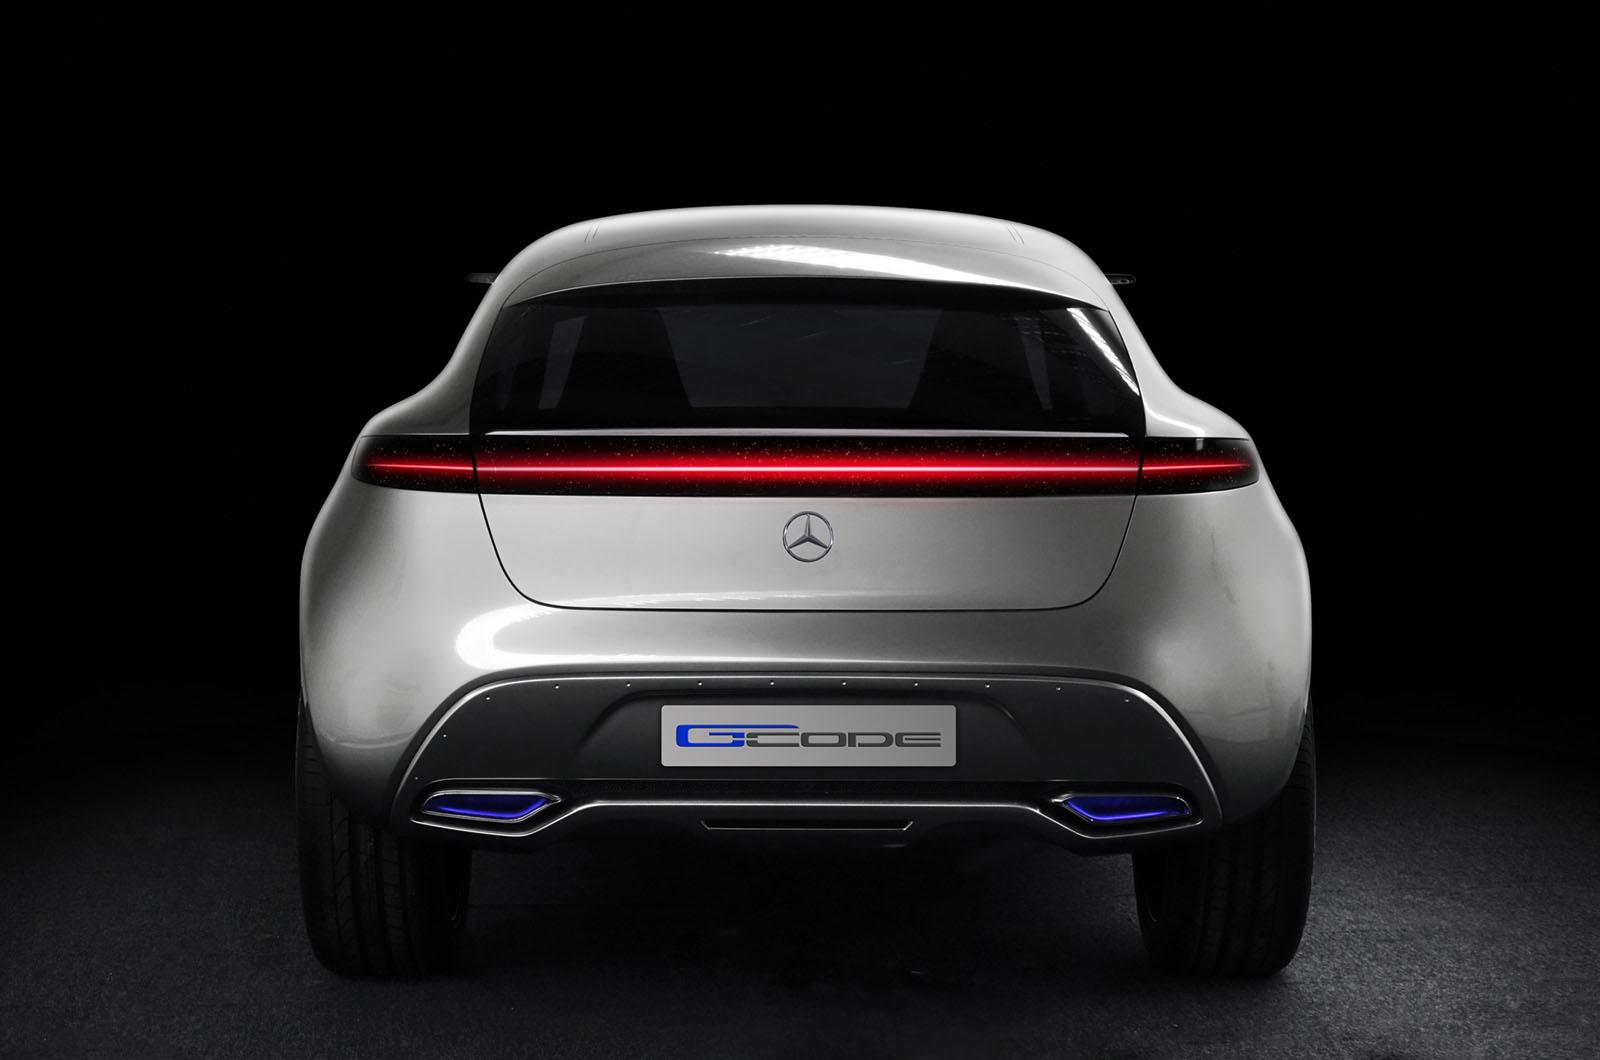 Mercedes-Benz G-Code Concept rear